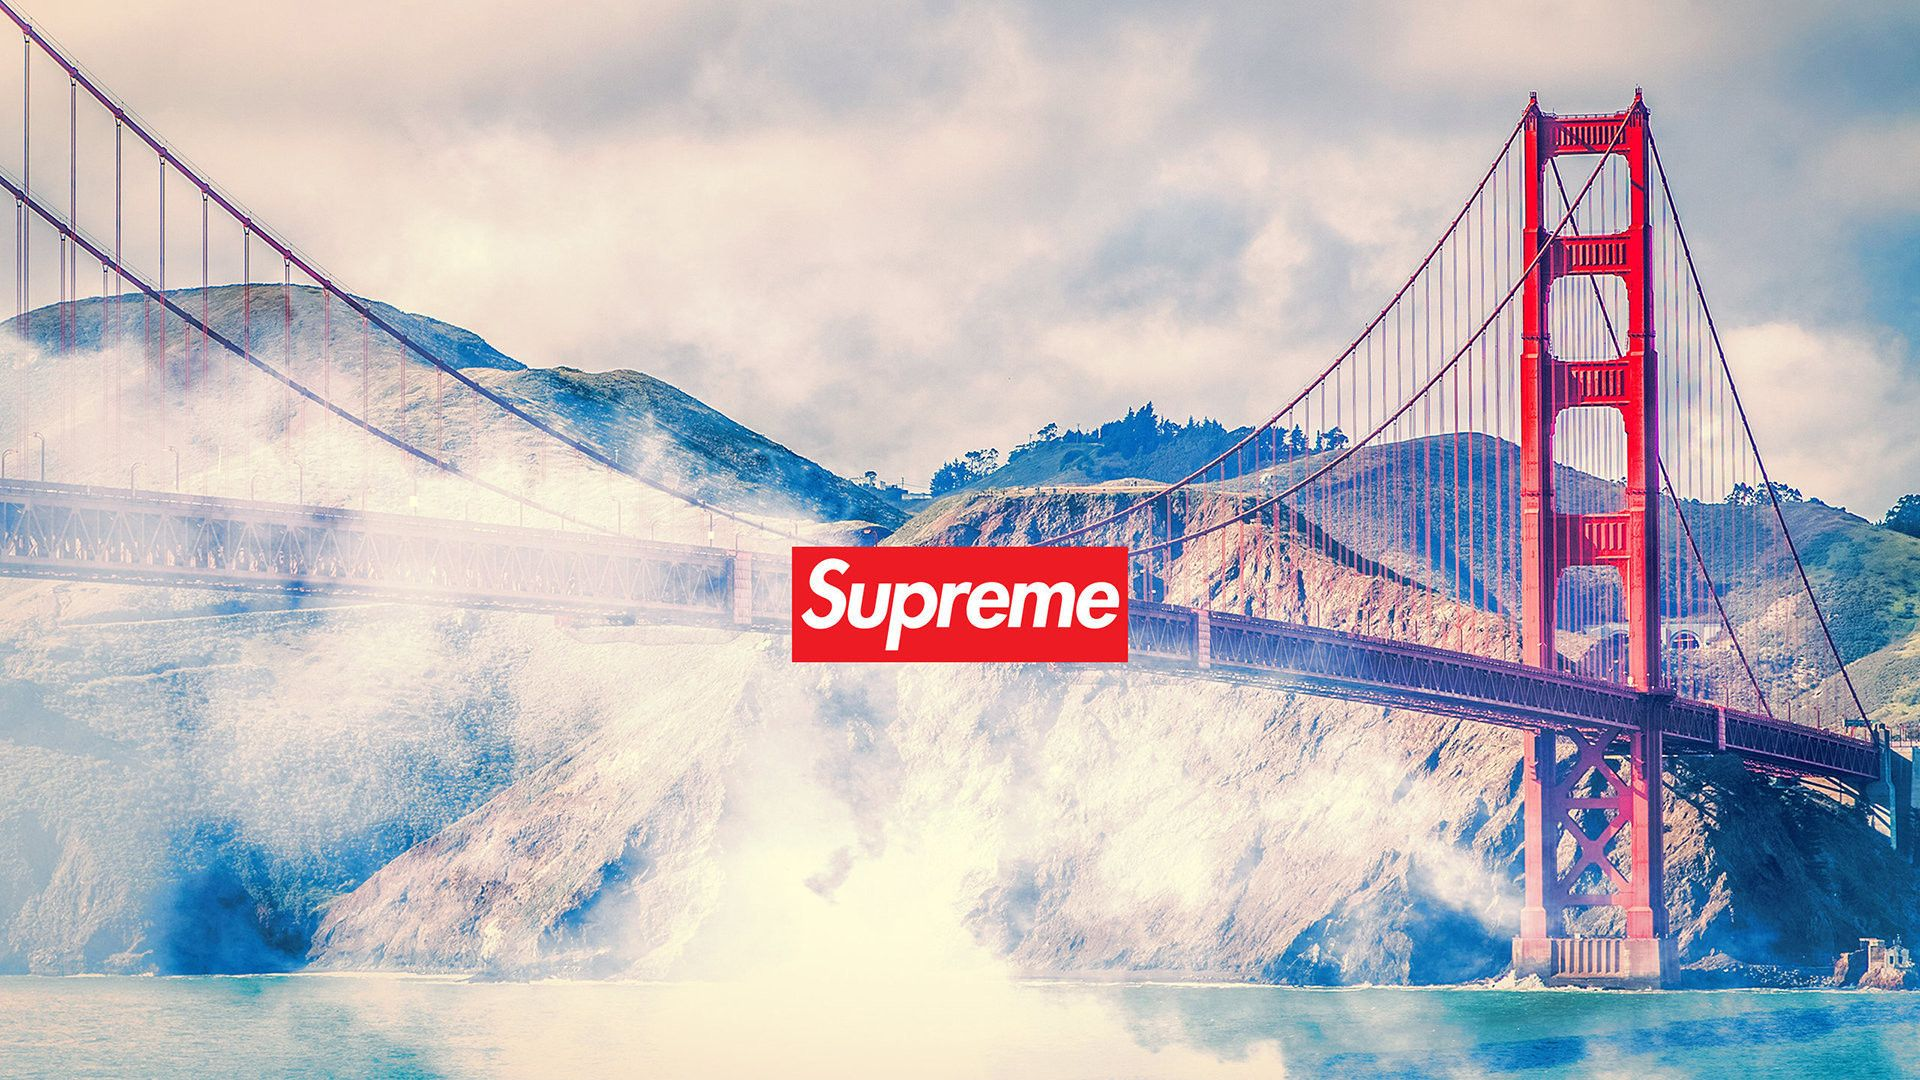 Products Supreme Golden Gate Hd Wallpaper Wallpaper Cart In 2020 Supreme Wallpaper Supreme Iphone Wallpaper Supreme Wallpaper Hd